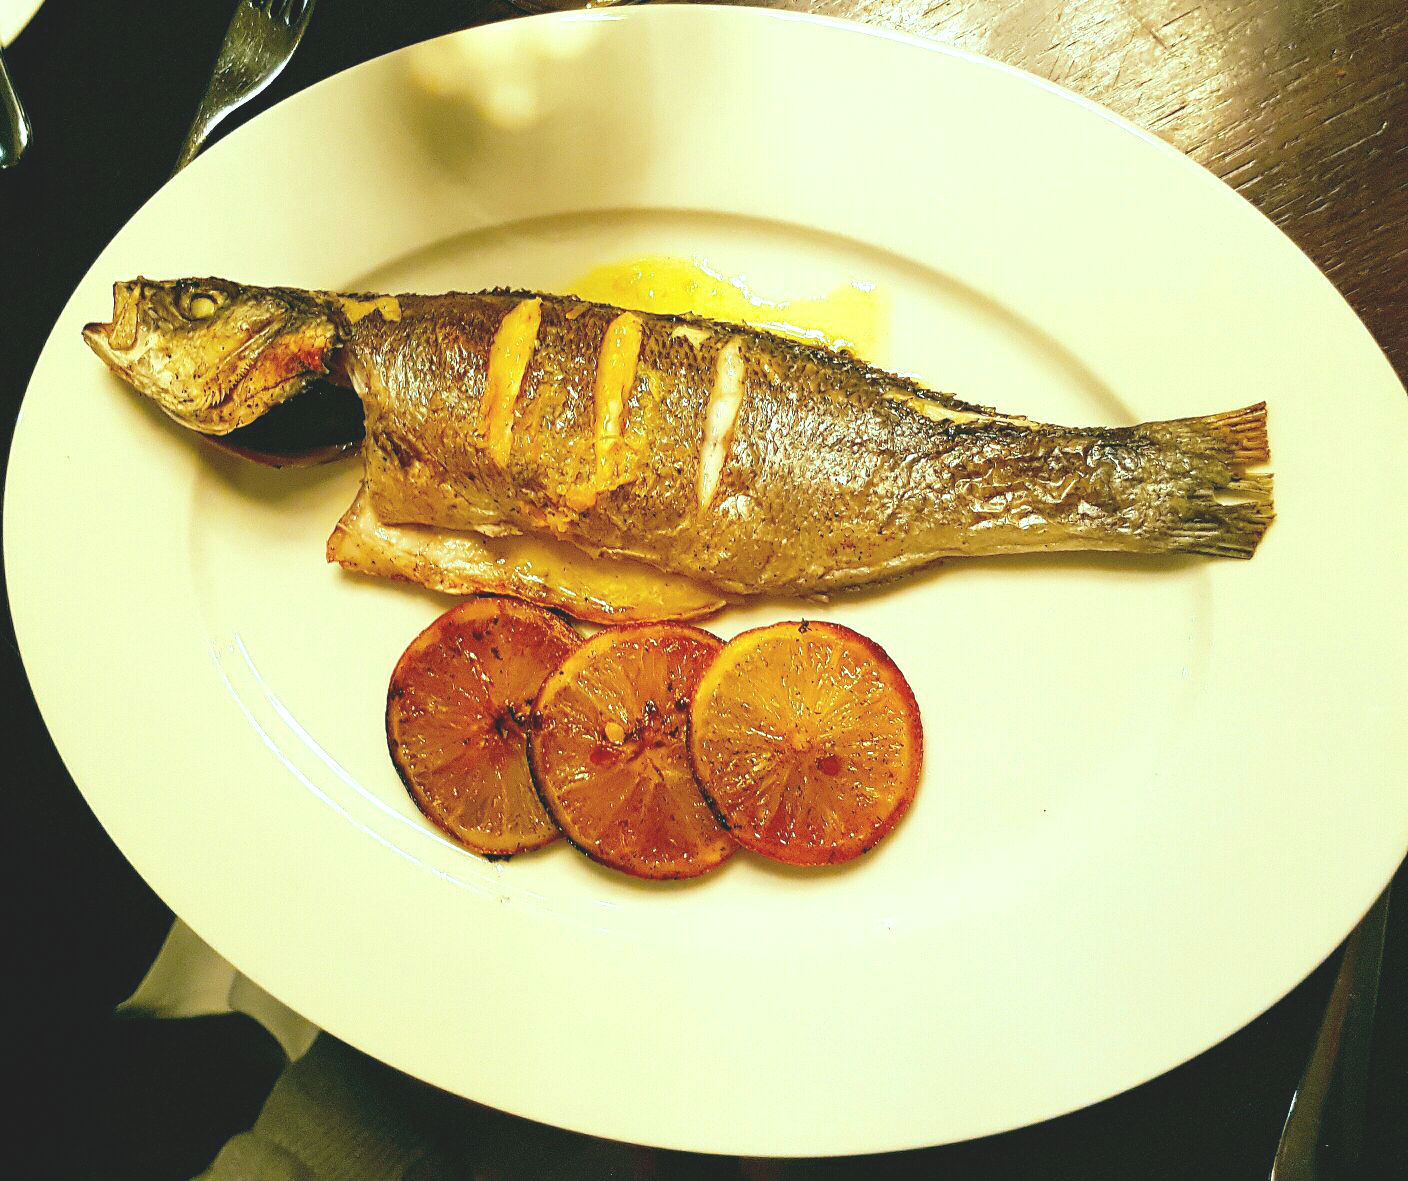 Fish main course - Hunter 486 review